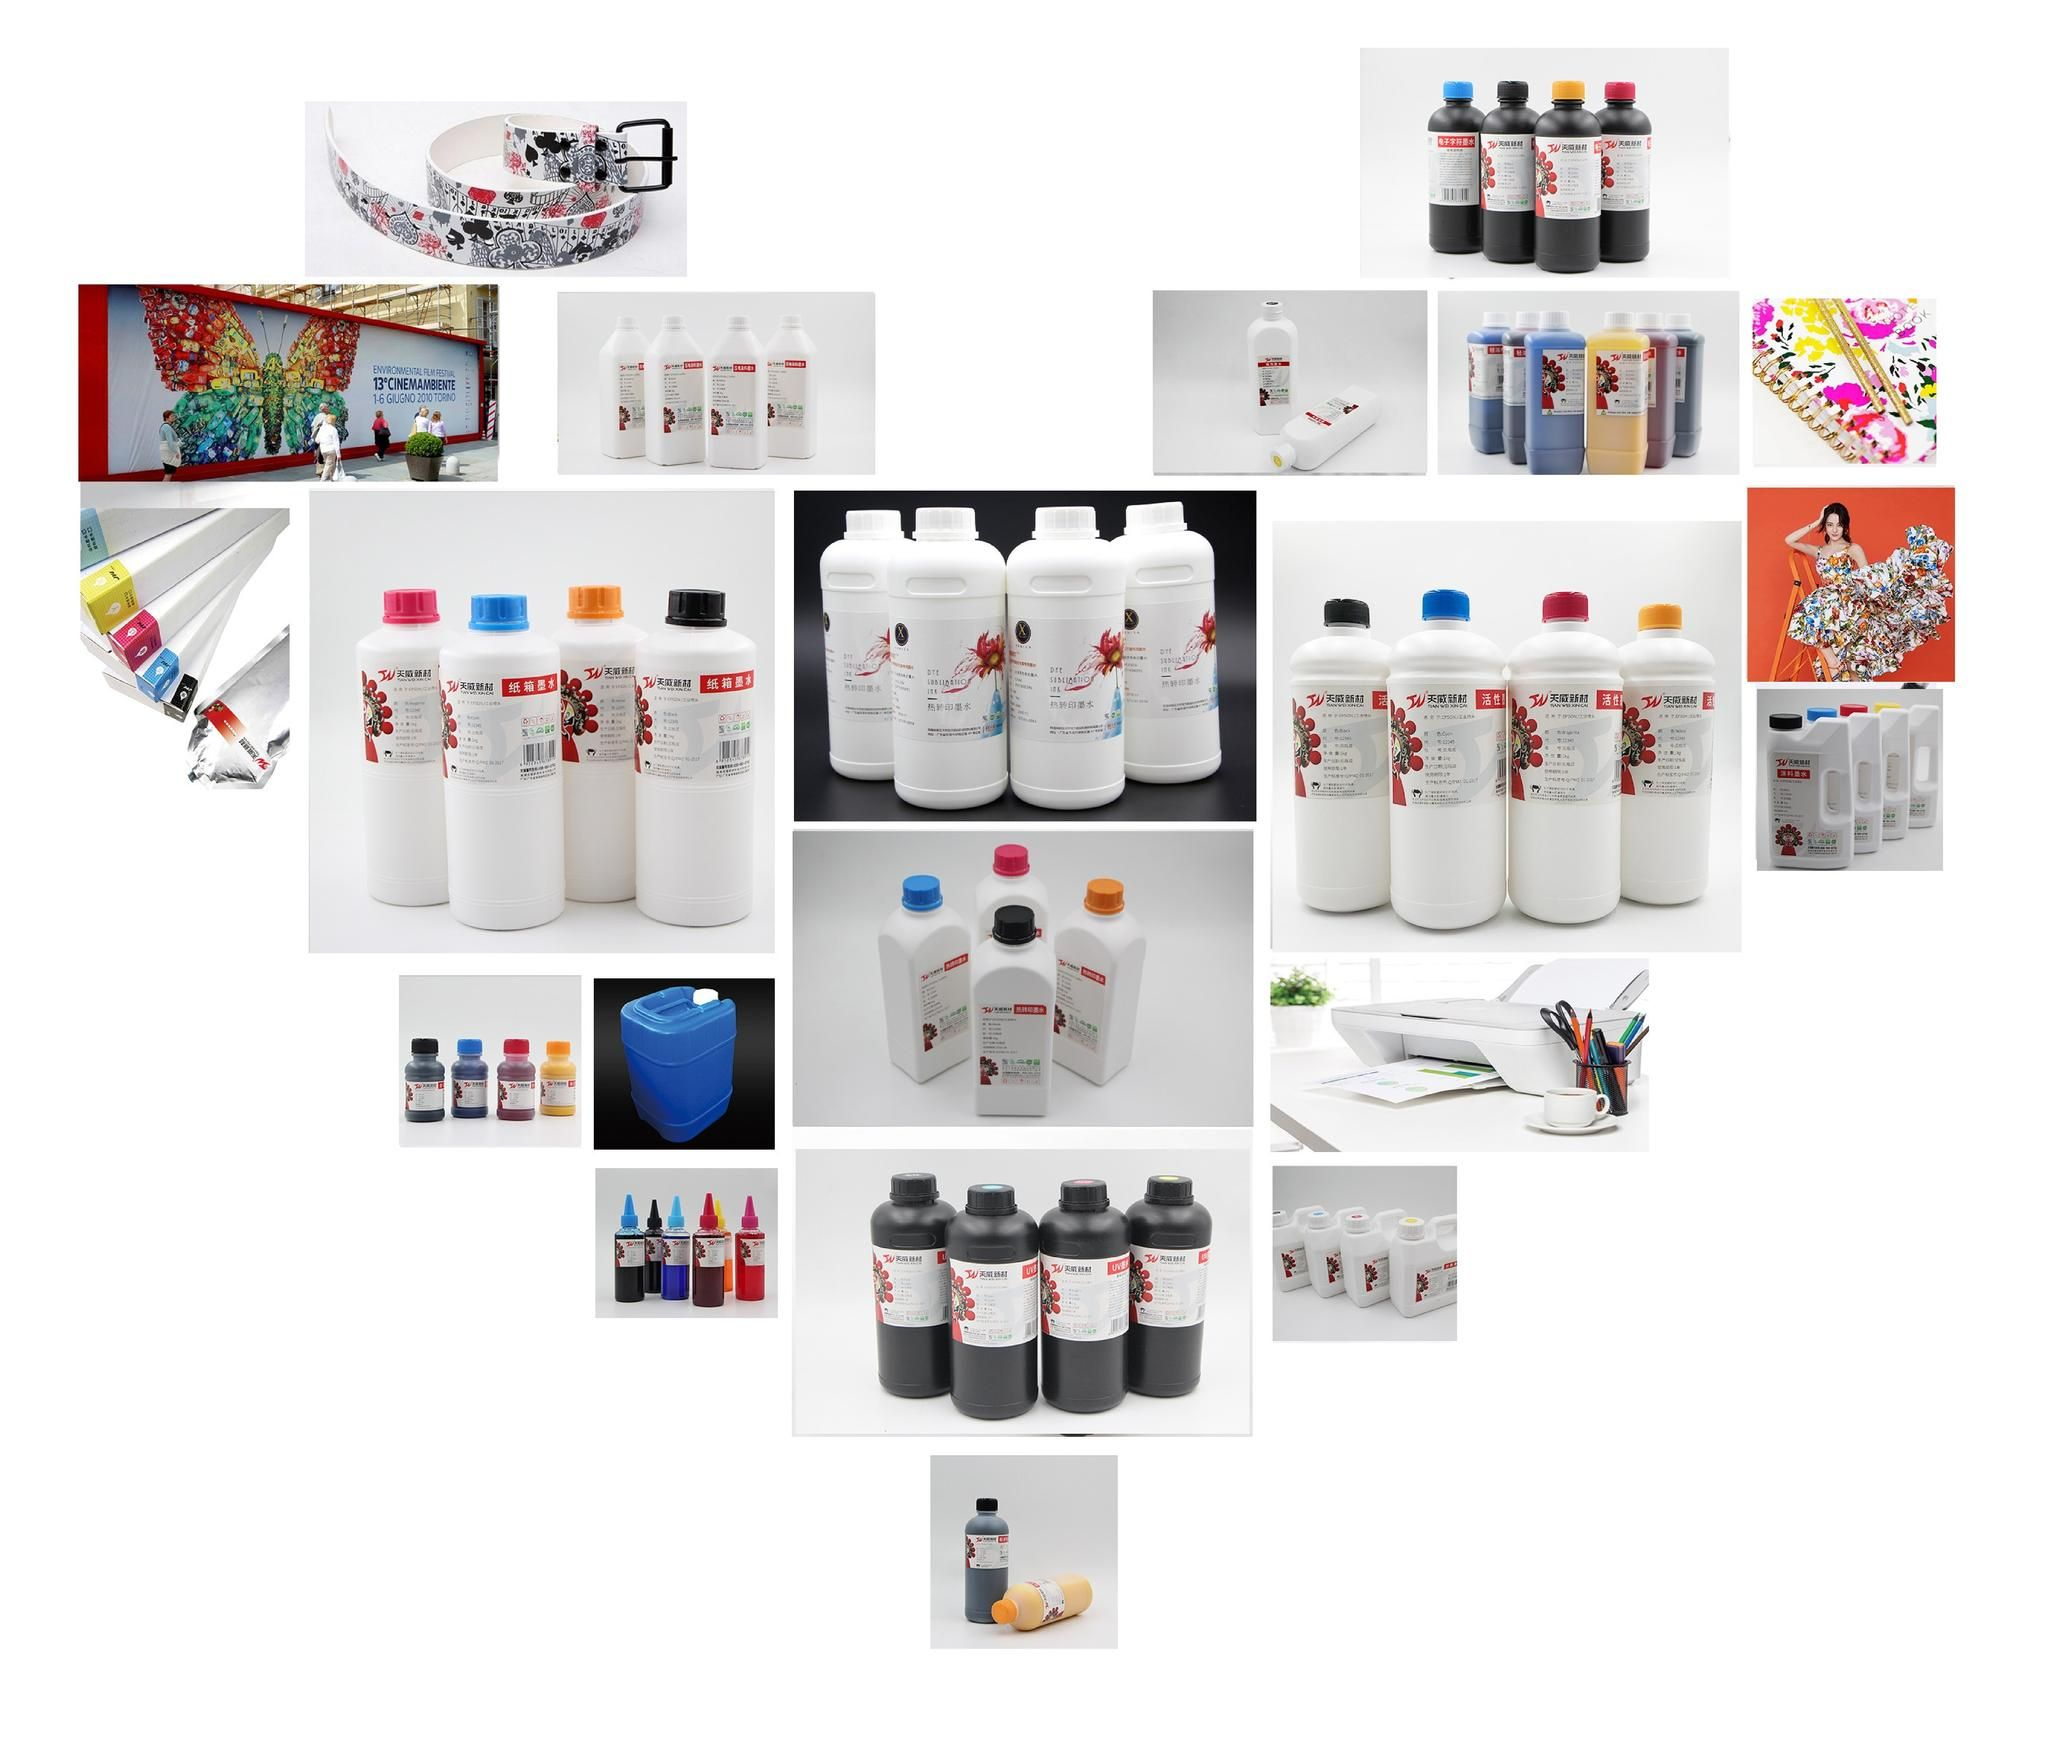 Super Premium Dye Sublimation Ink Solution from Print-Rite